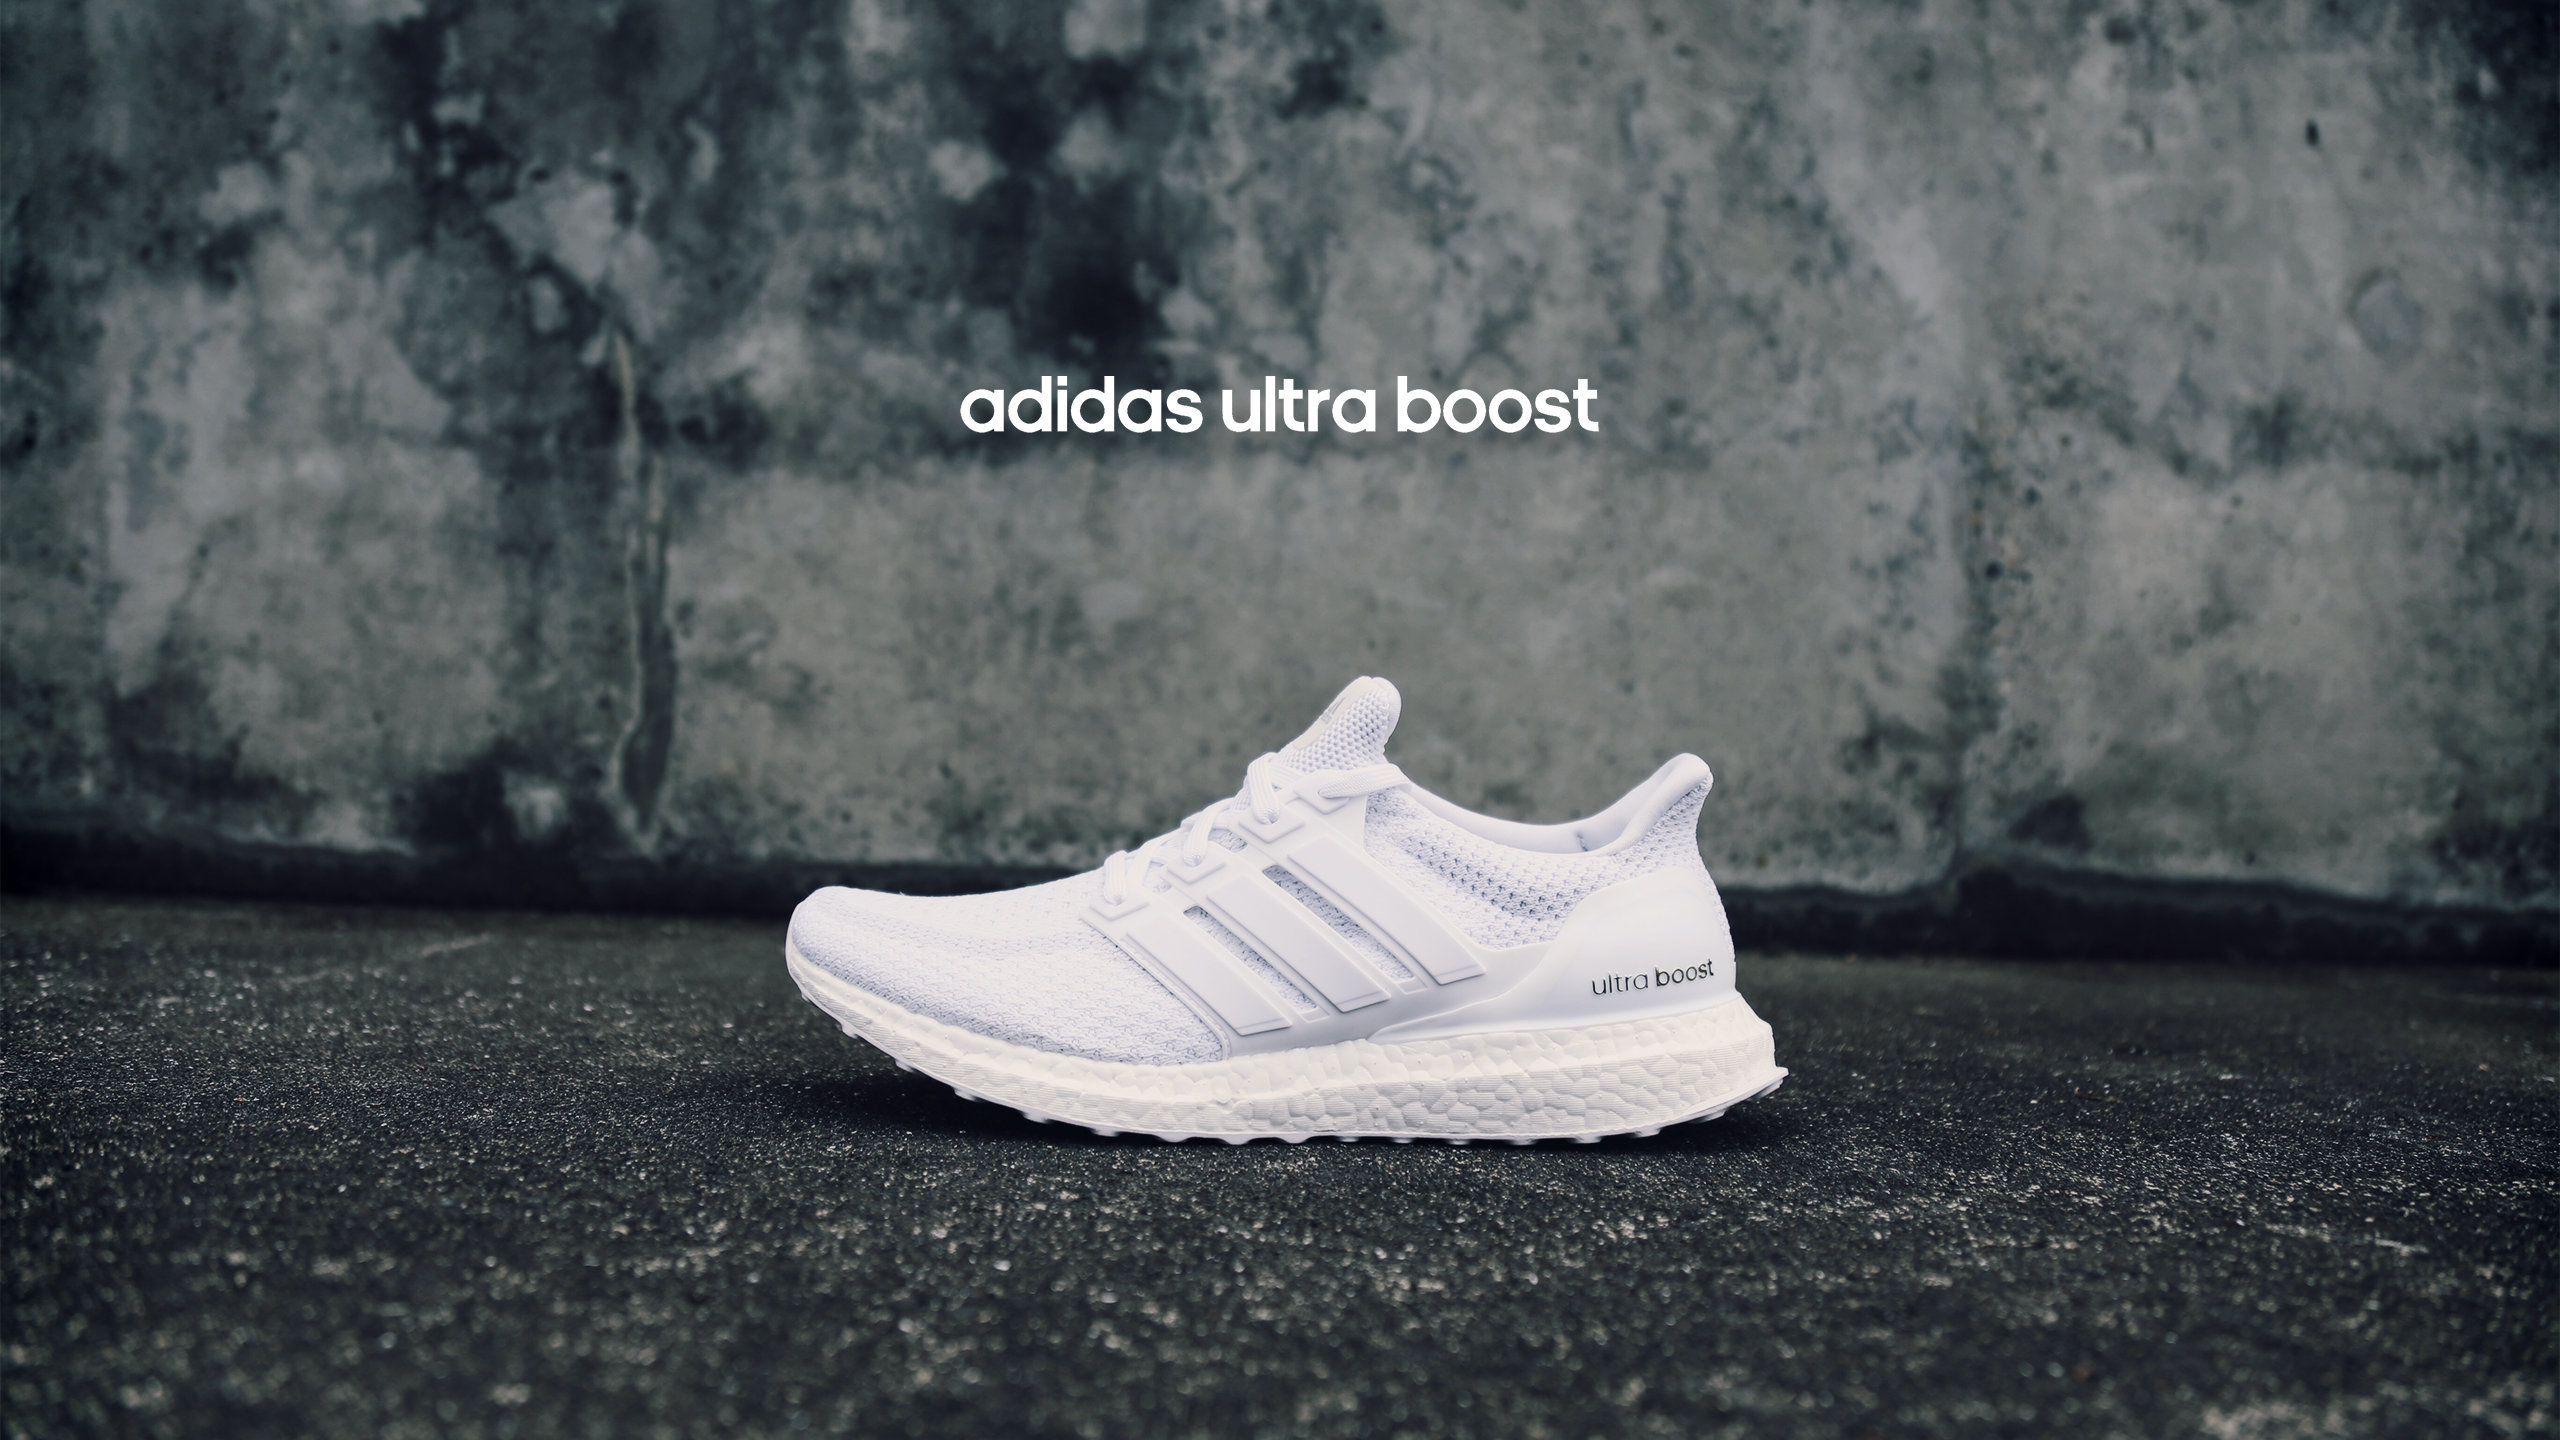 339fc10f0 Adidas Extremely Spice up Footwear Wallpaper Copemlegit. Adidas Wallpaper  Adidas Clouds Wallpaper Ultraboost Kanye